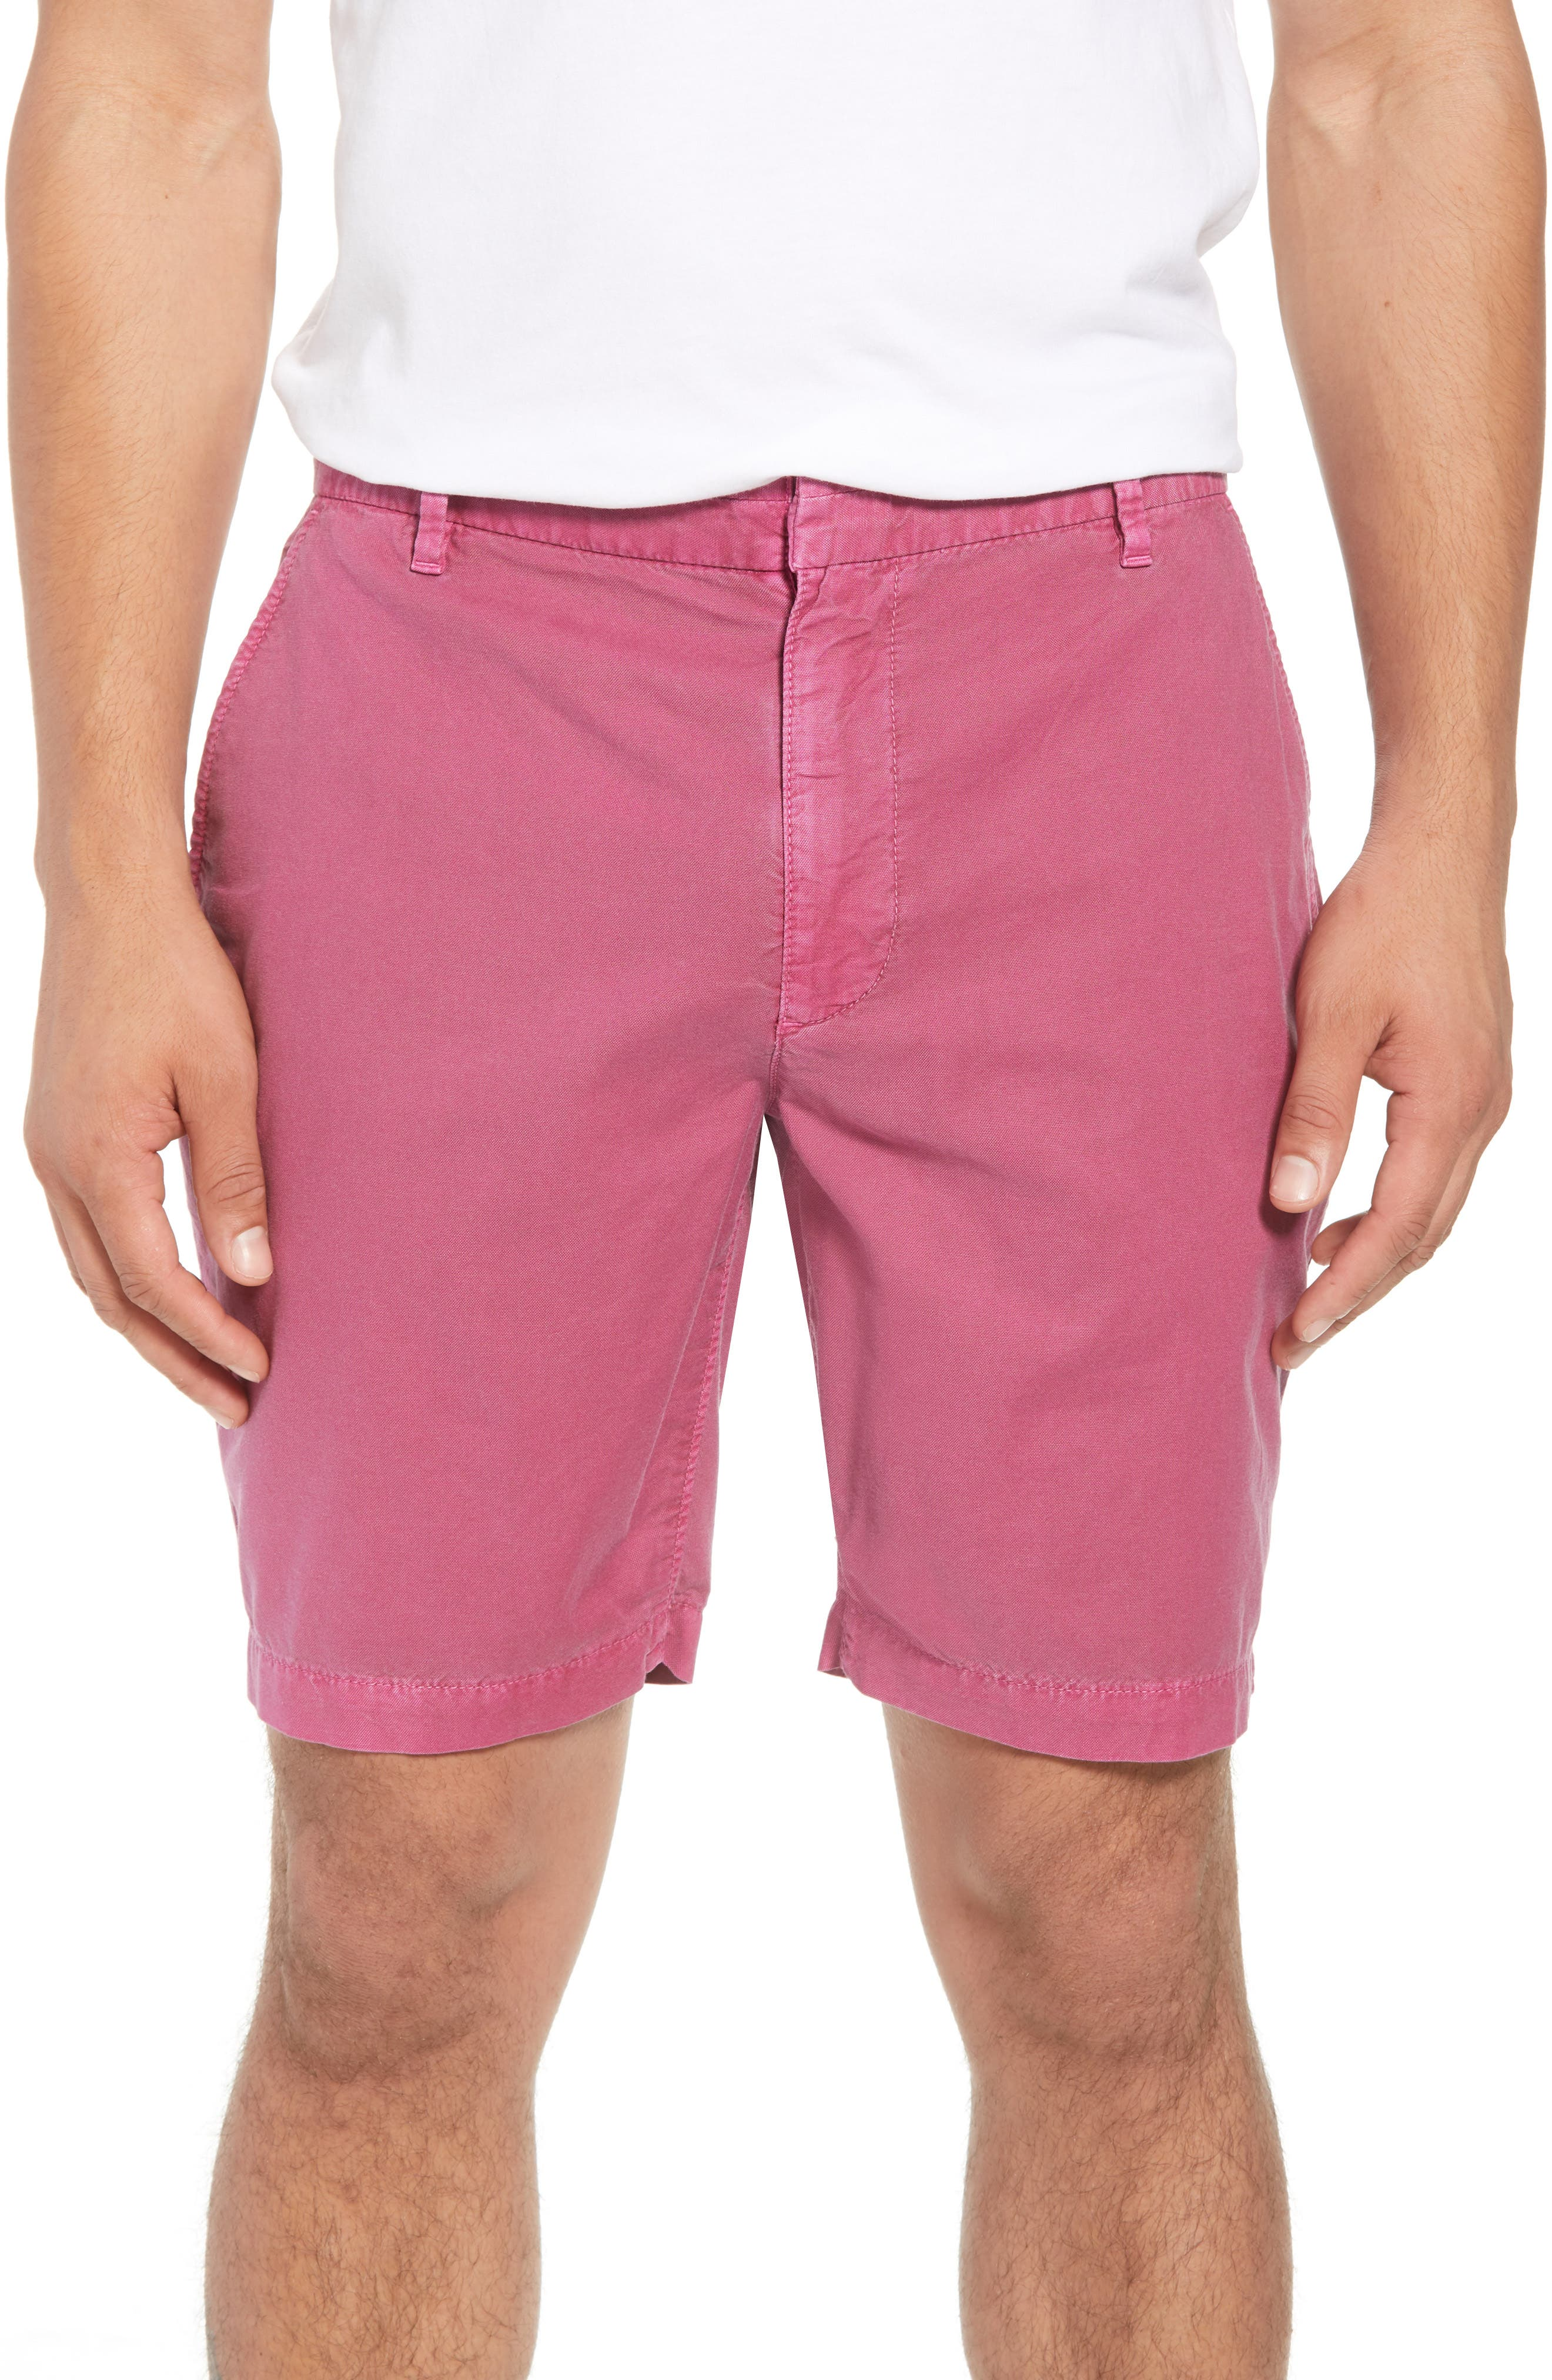 Butter Ball Shorts,                         Main,                         color, Dusty Rose